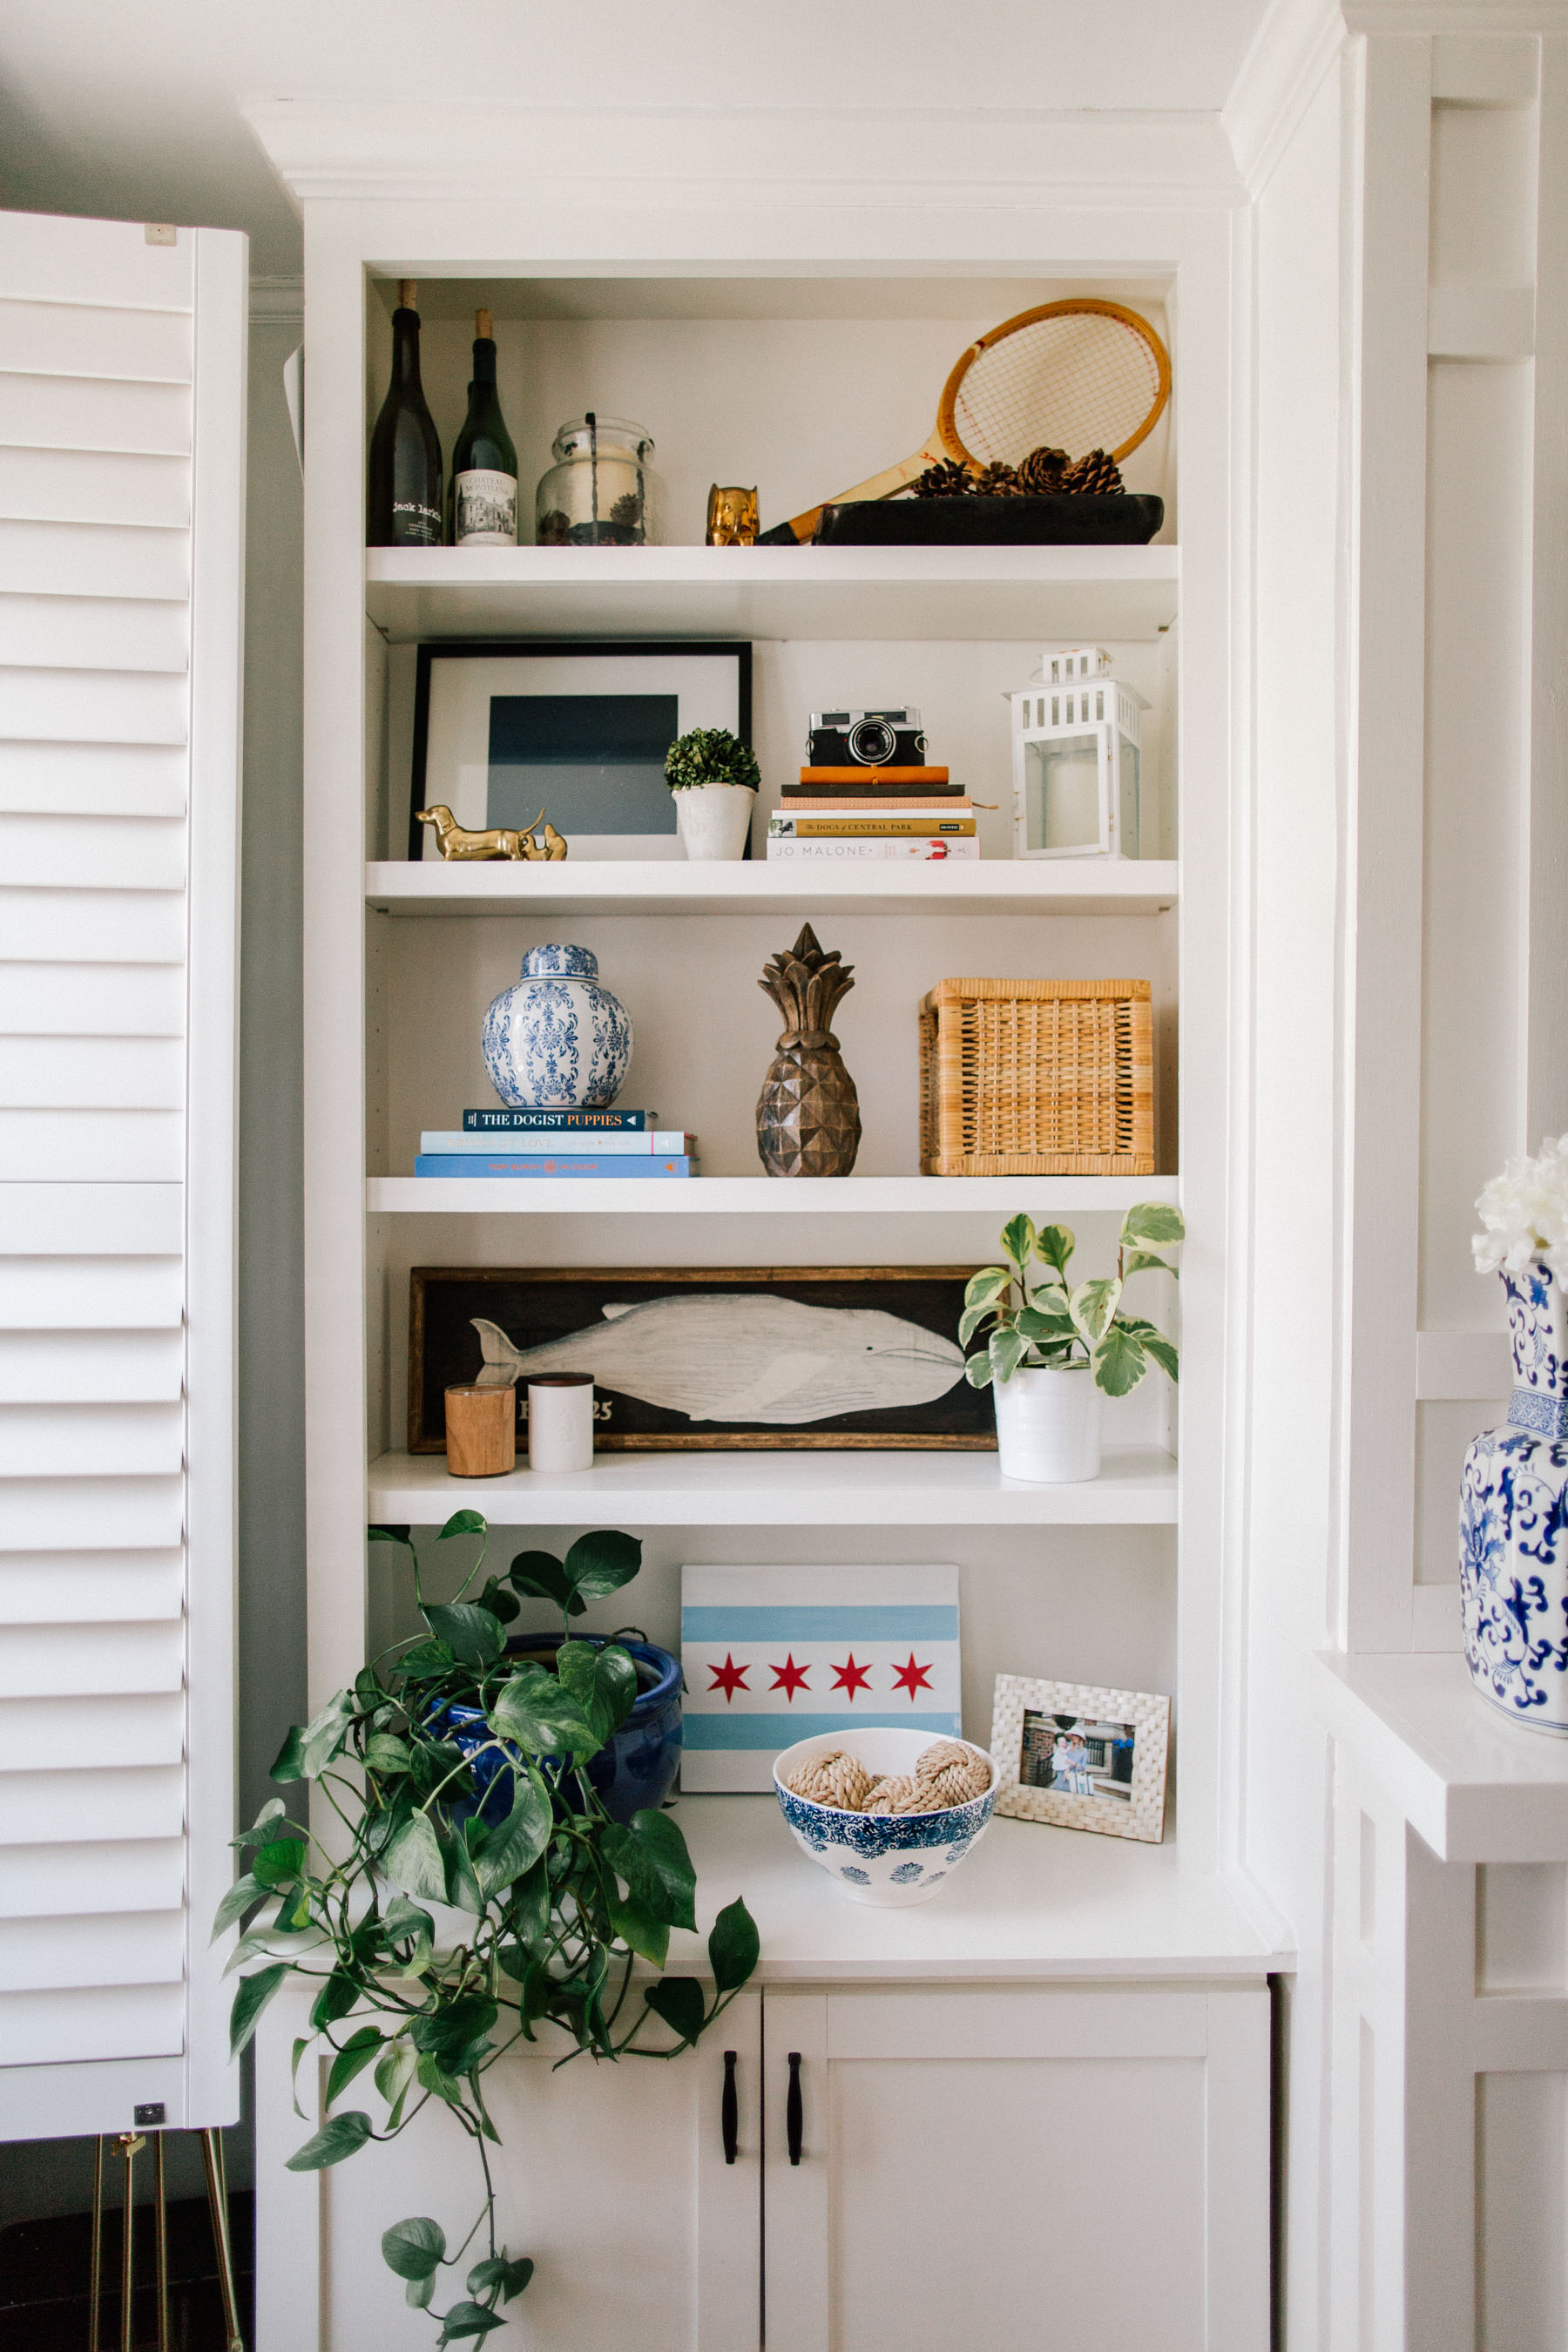 How to Decorate Preppy Bookshelves - Kelly in the City